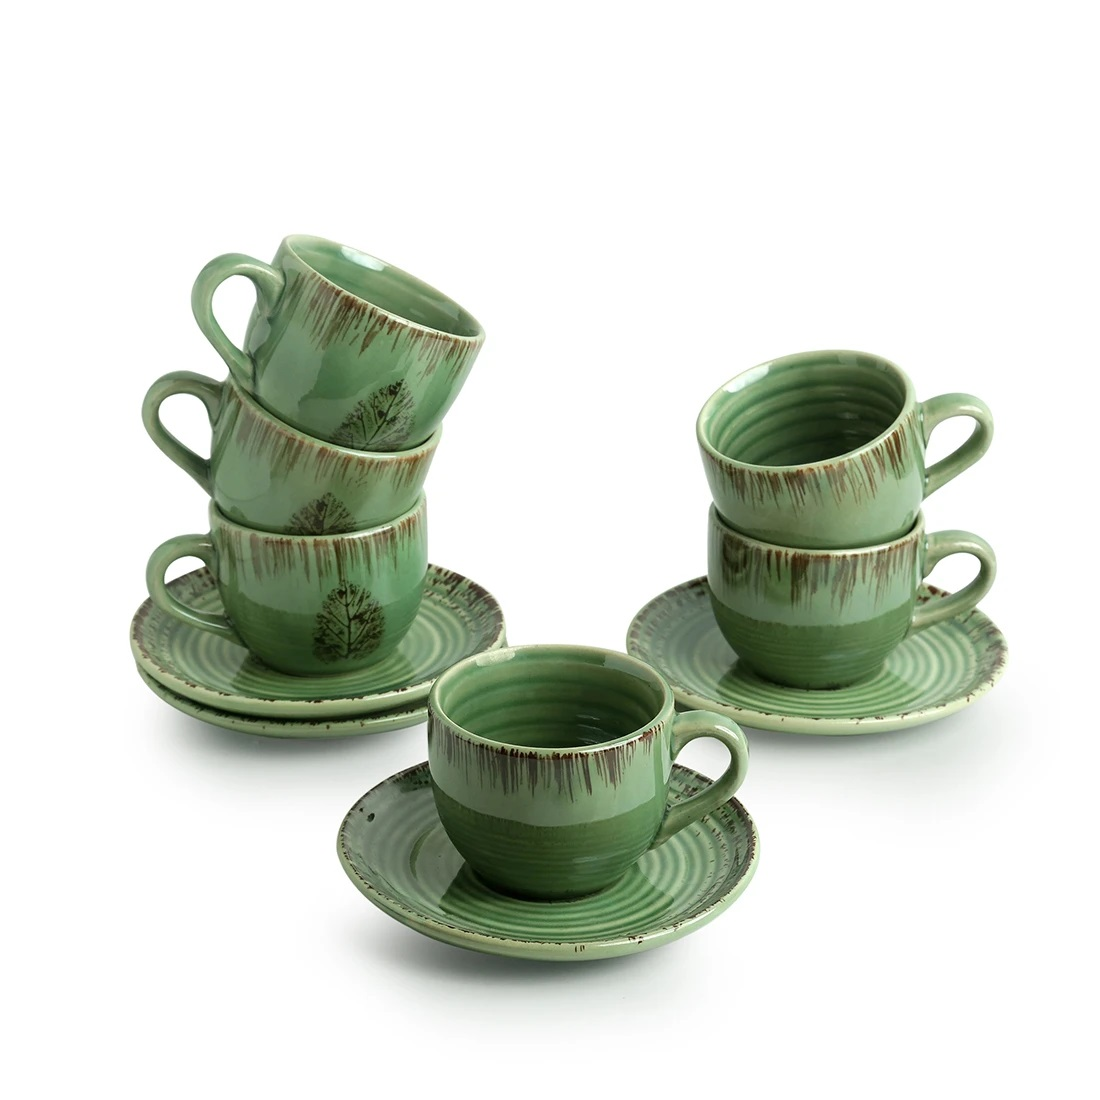 Moorni Banyan Leaves Hand-painted Studio Pottery Tea Cups With Saucers In Ceramic (Set of 6, Microwave Safe)